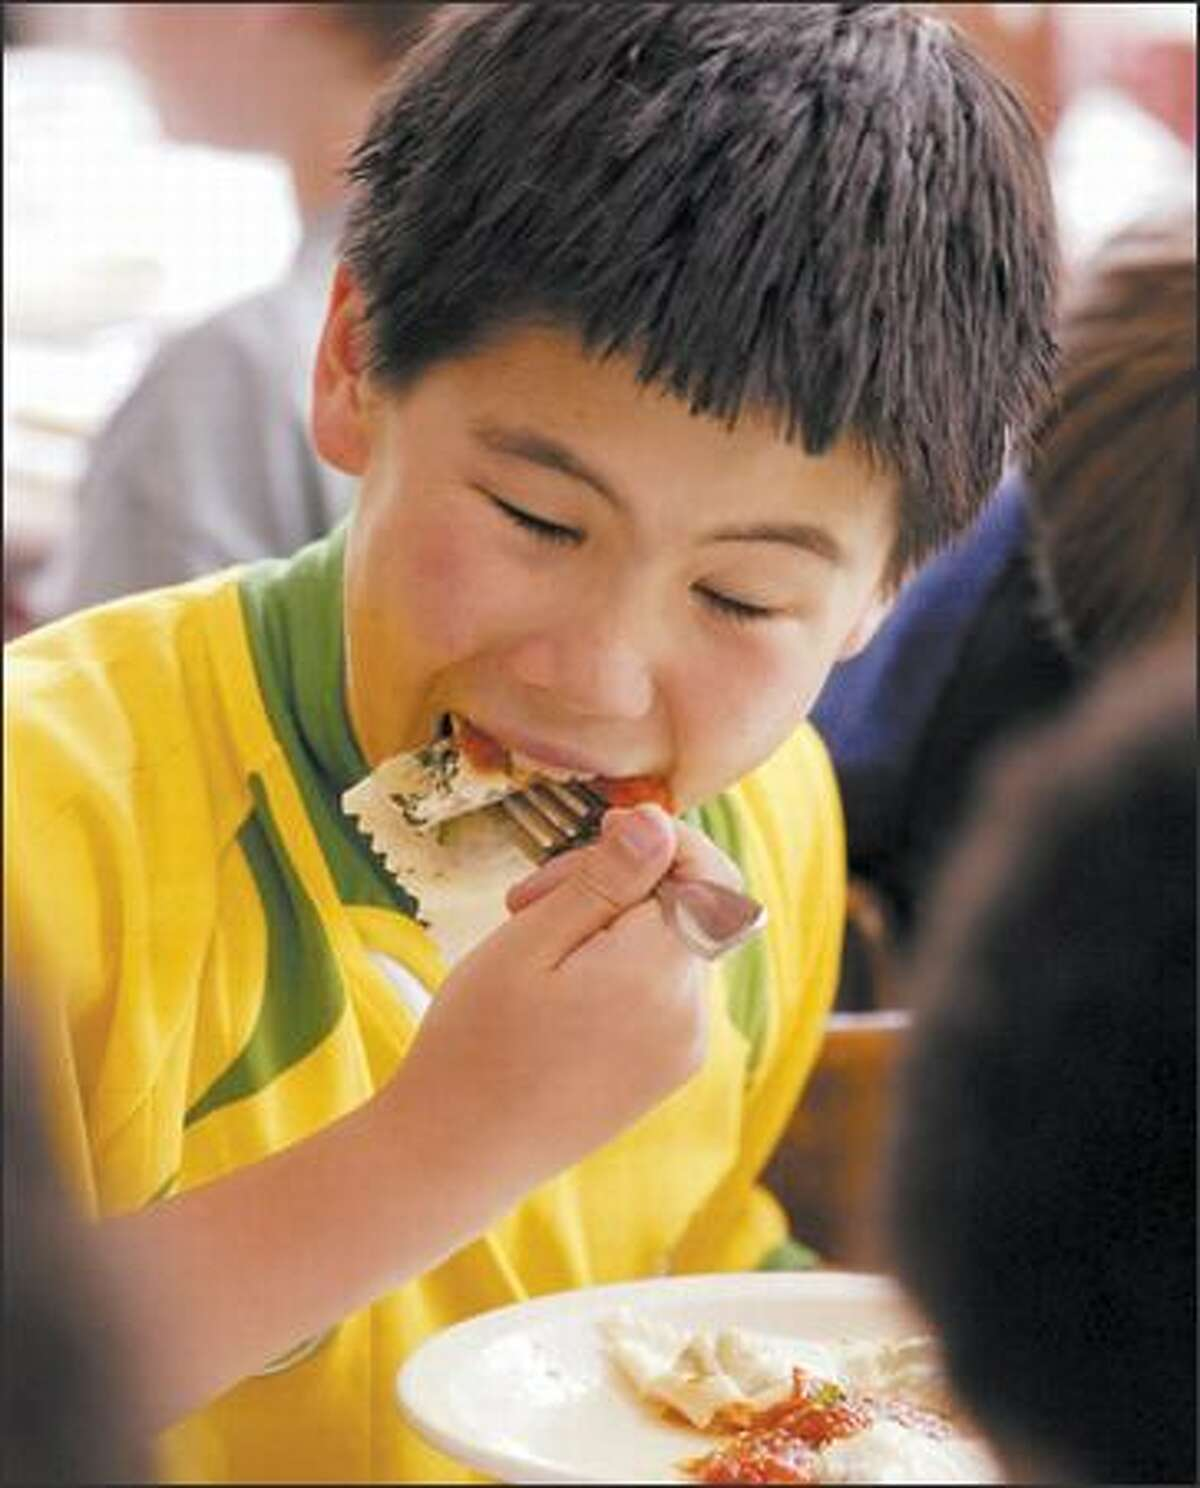 Student Jimmy Bromley takes a big bite of ravioli stuffed with herbs grown in Montlake Elementary's school garden.